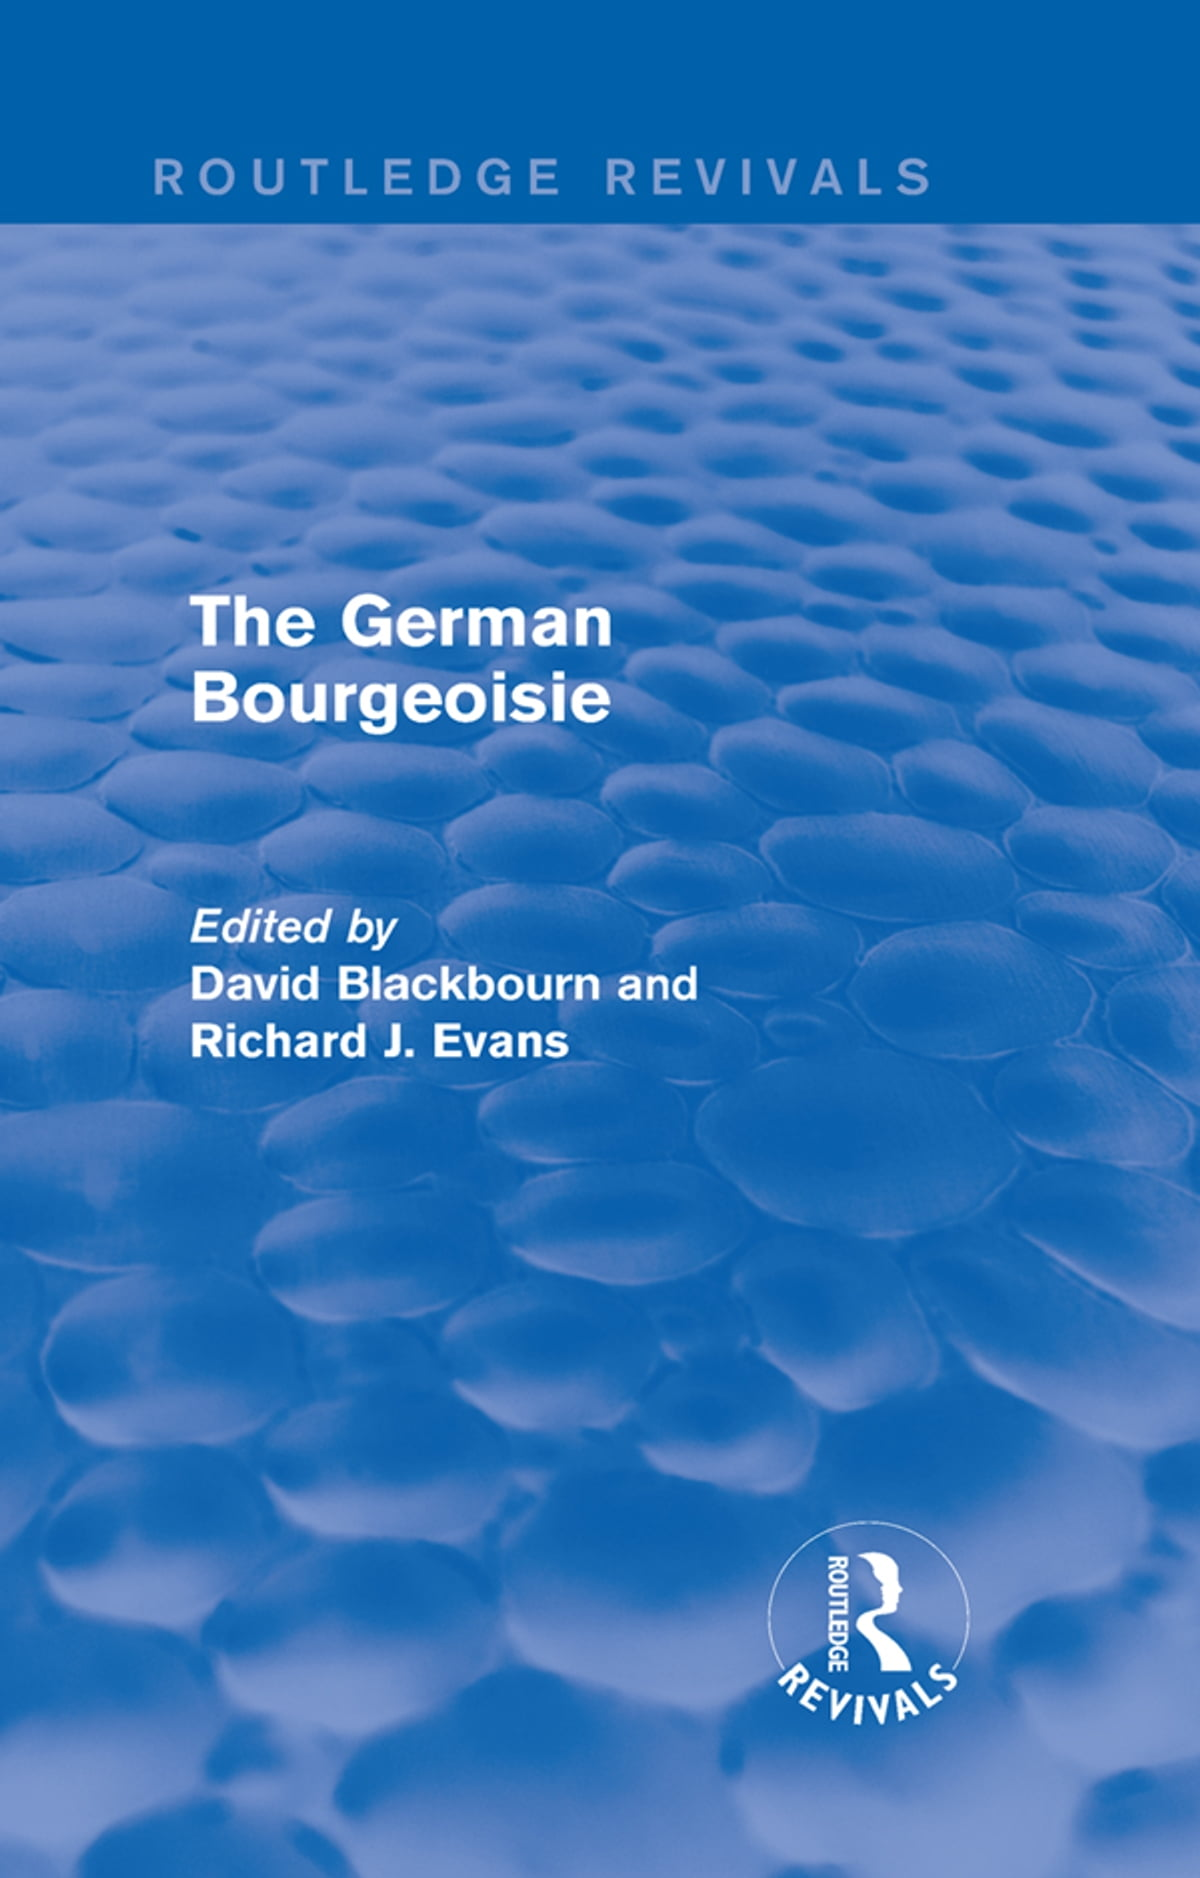 The German Bourgeoisie (Routledge Revivals) eBook by